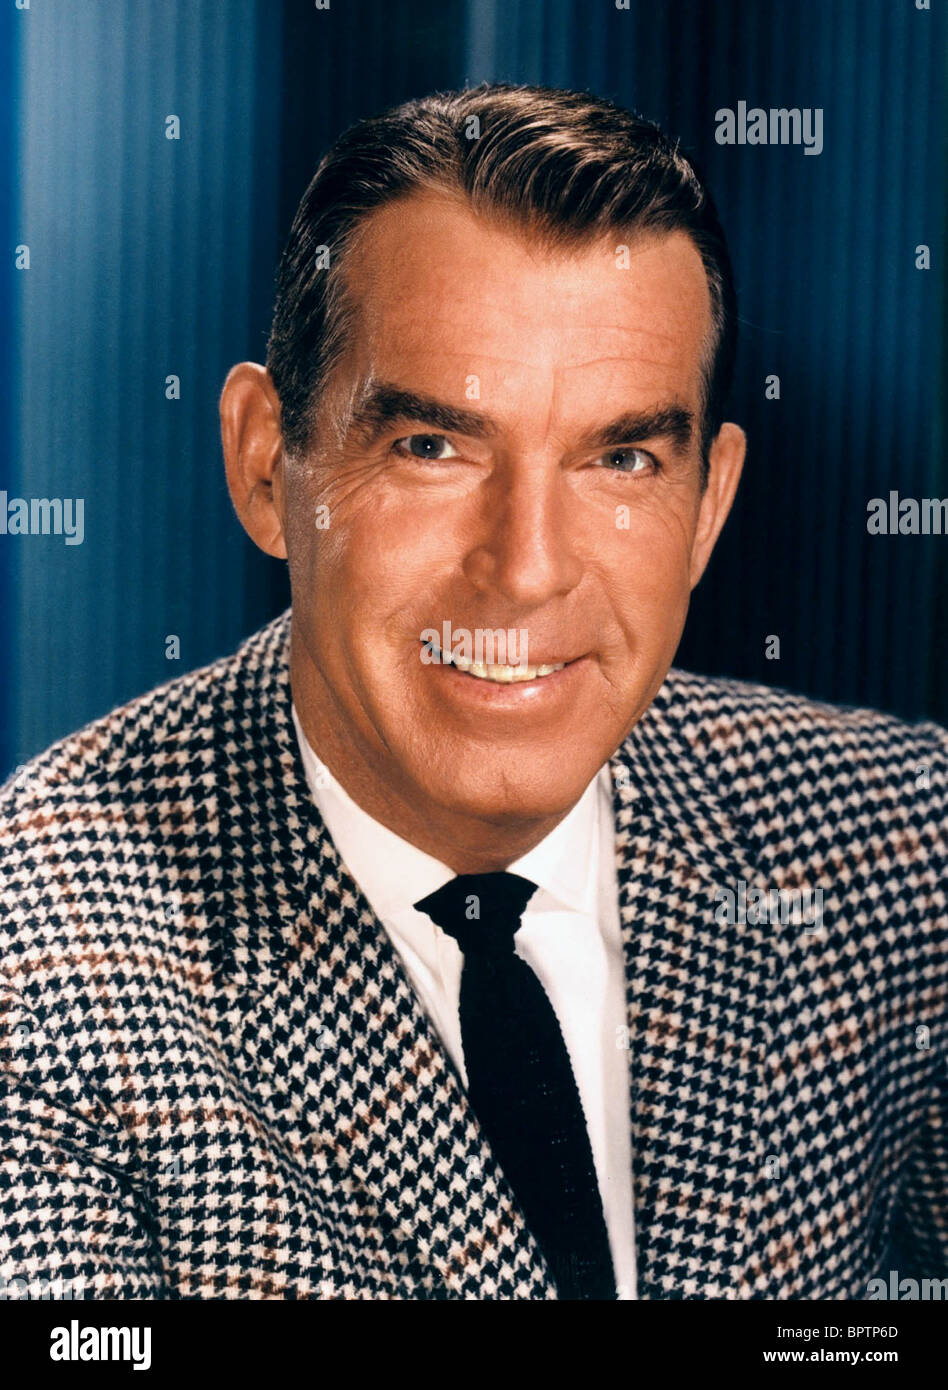 FRED MACMURRAY ACTOR (1960) - Stock Image